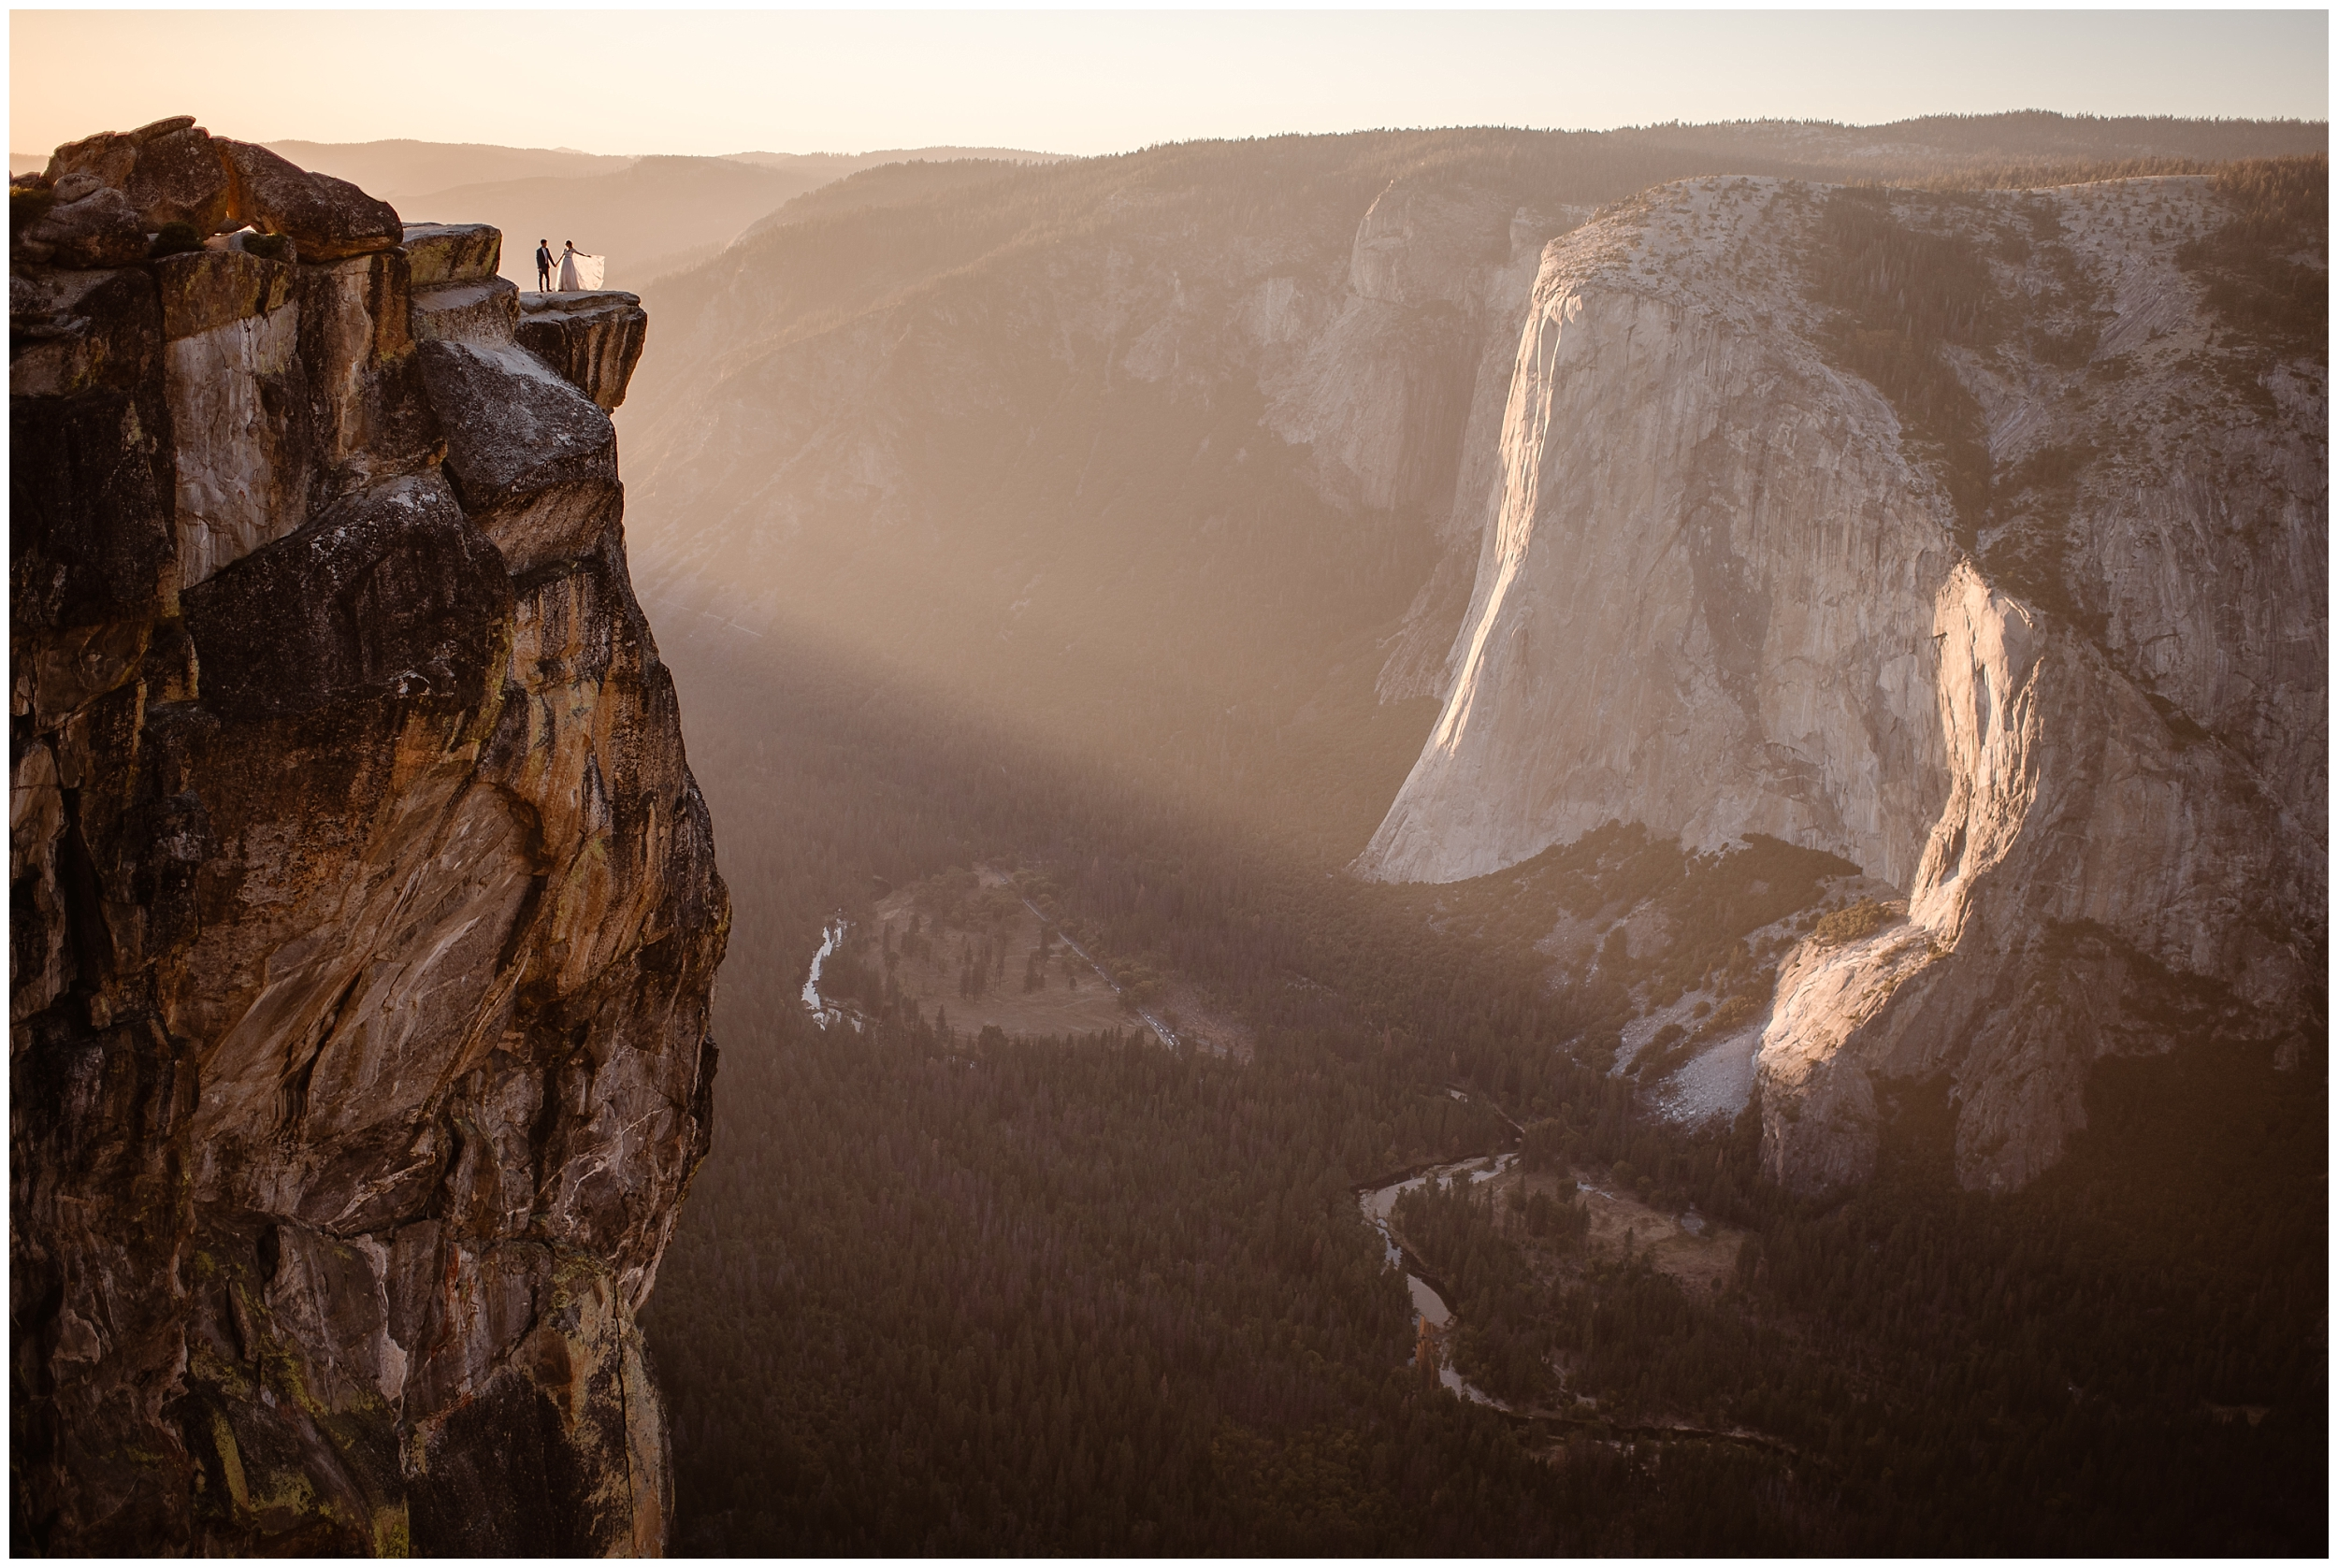 In the distance, a bride and groom can be seen standing on the edge of a cliff in Yosemite National Park during golden hour. These elopement photos are captured by Adventure Instead, an elopement photographer.